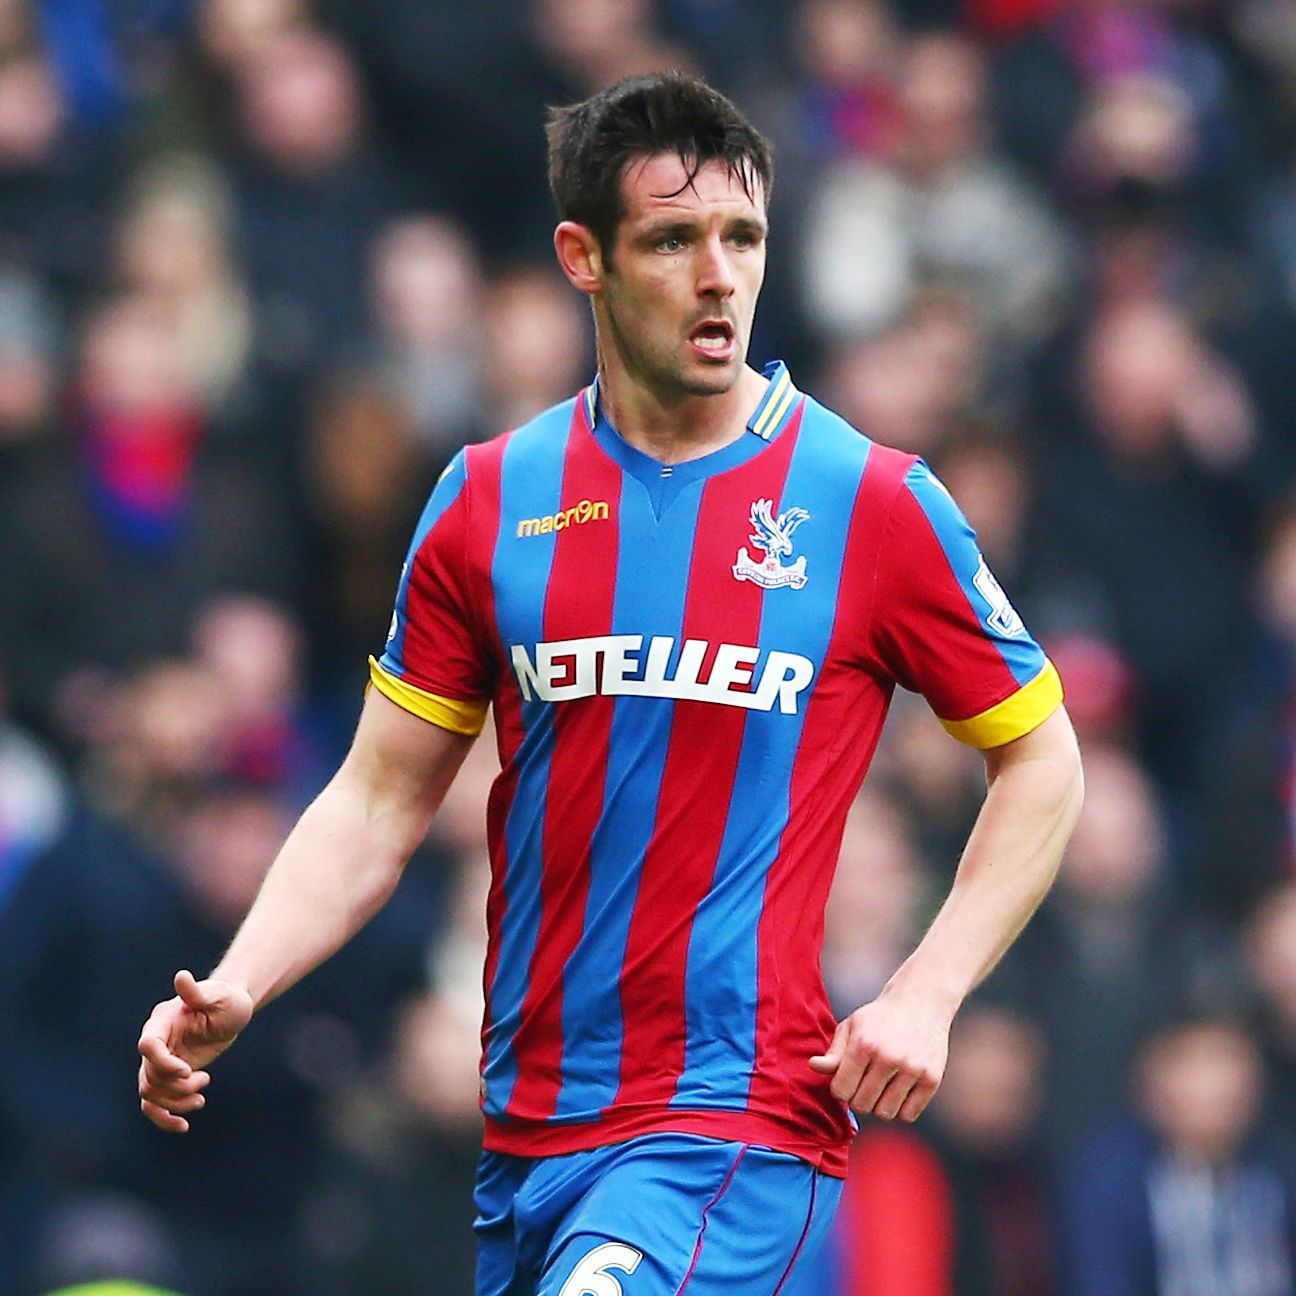 Crystal Palace defender Scott Dann once featured for England's under-21 squad, but has yet to receive a call-up to the senior team.